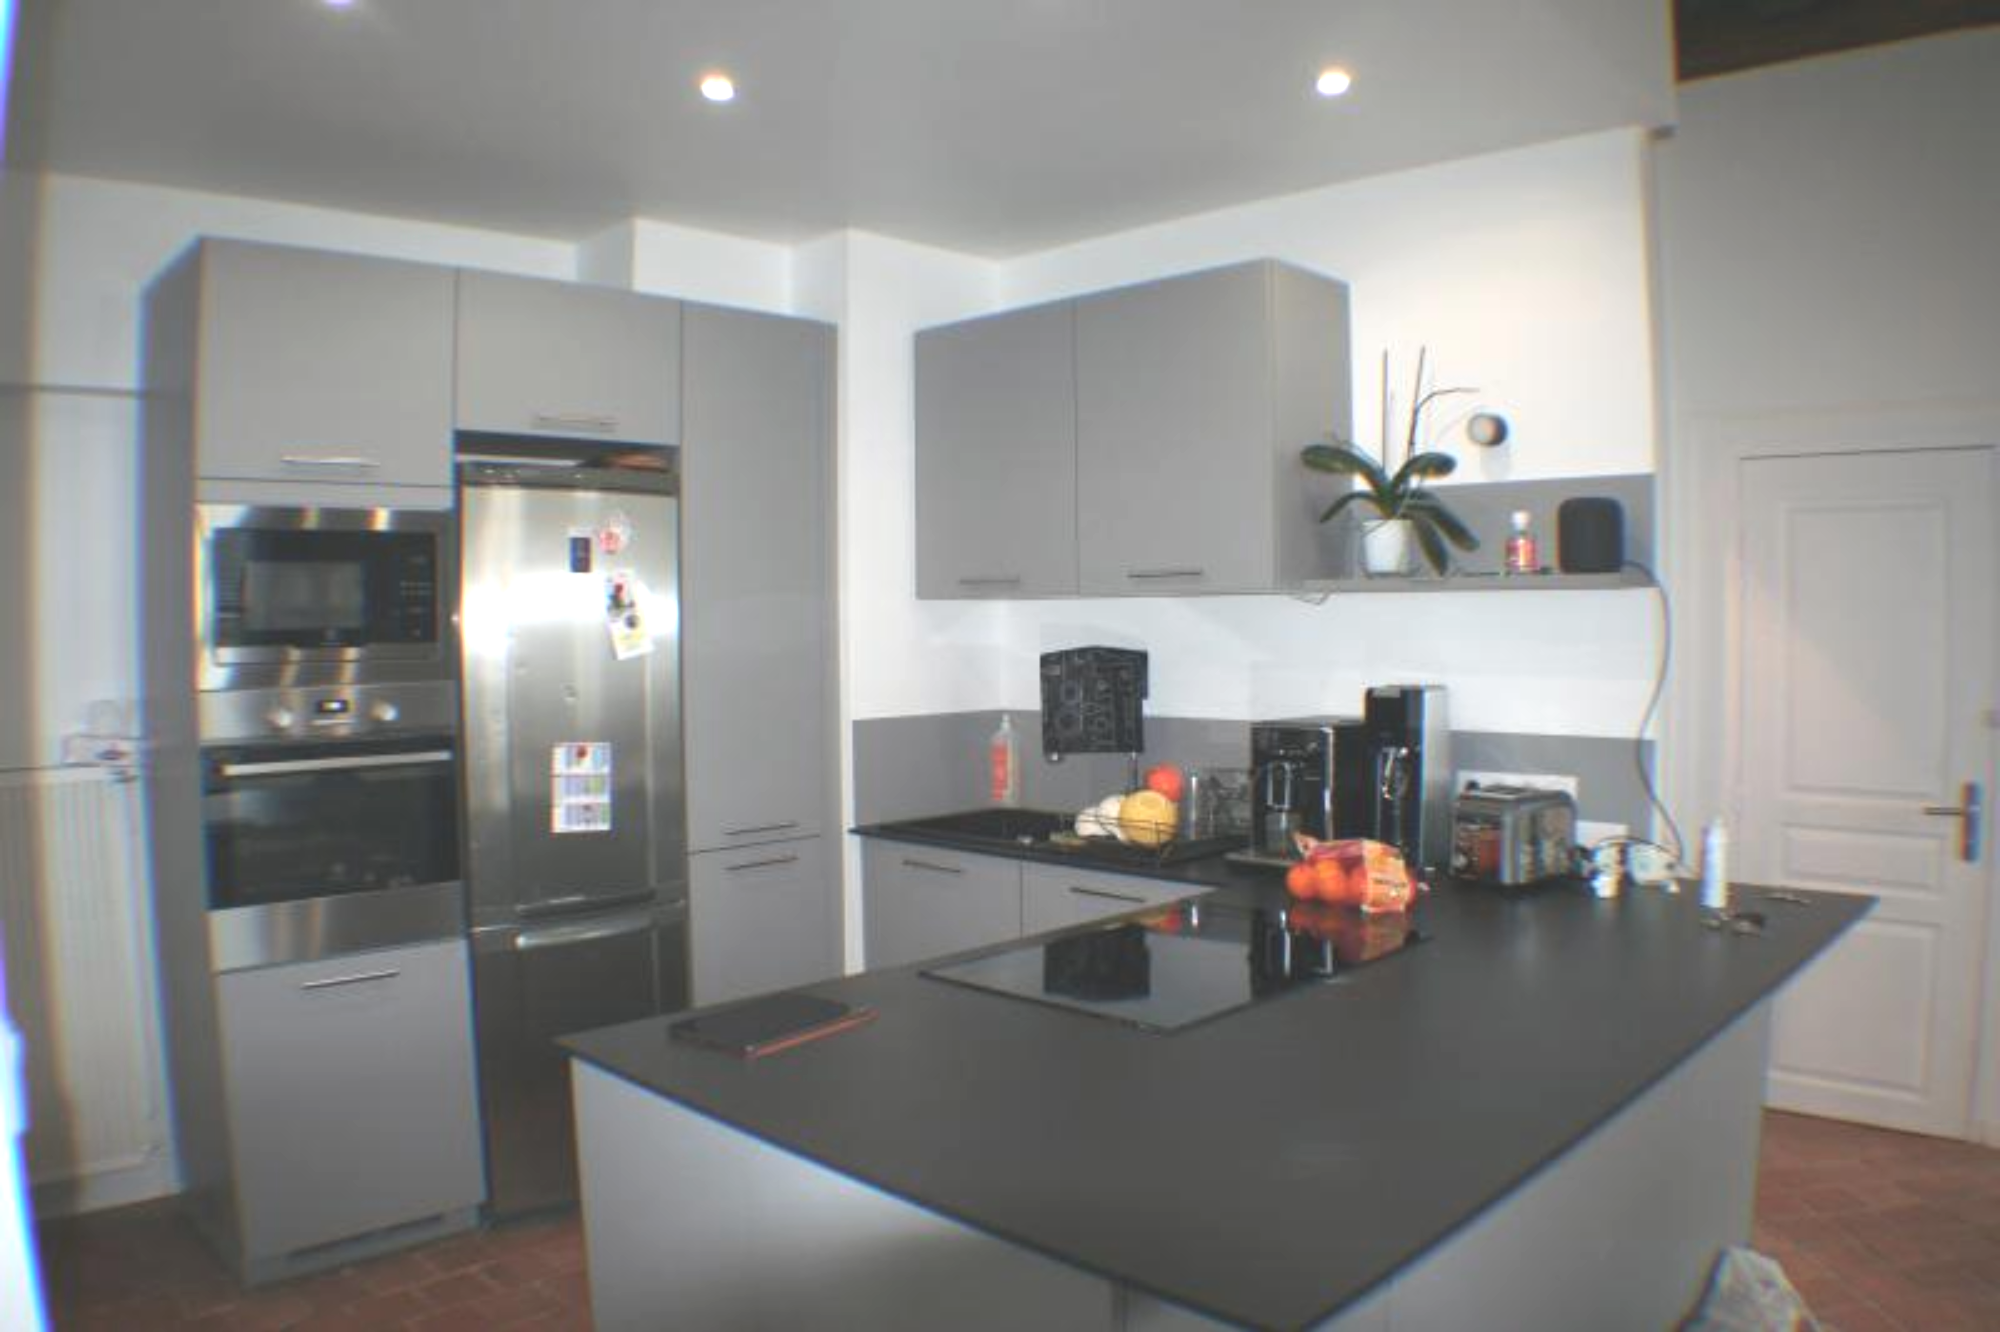 ANGERS 49000 CENTRE VILLE PROCHE PLACE IMBACH BEL APPARTEMENT 3 CHAMBRES